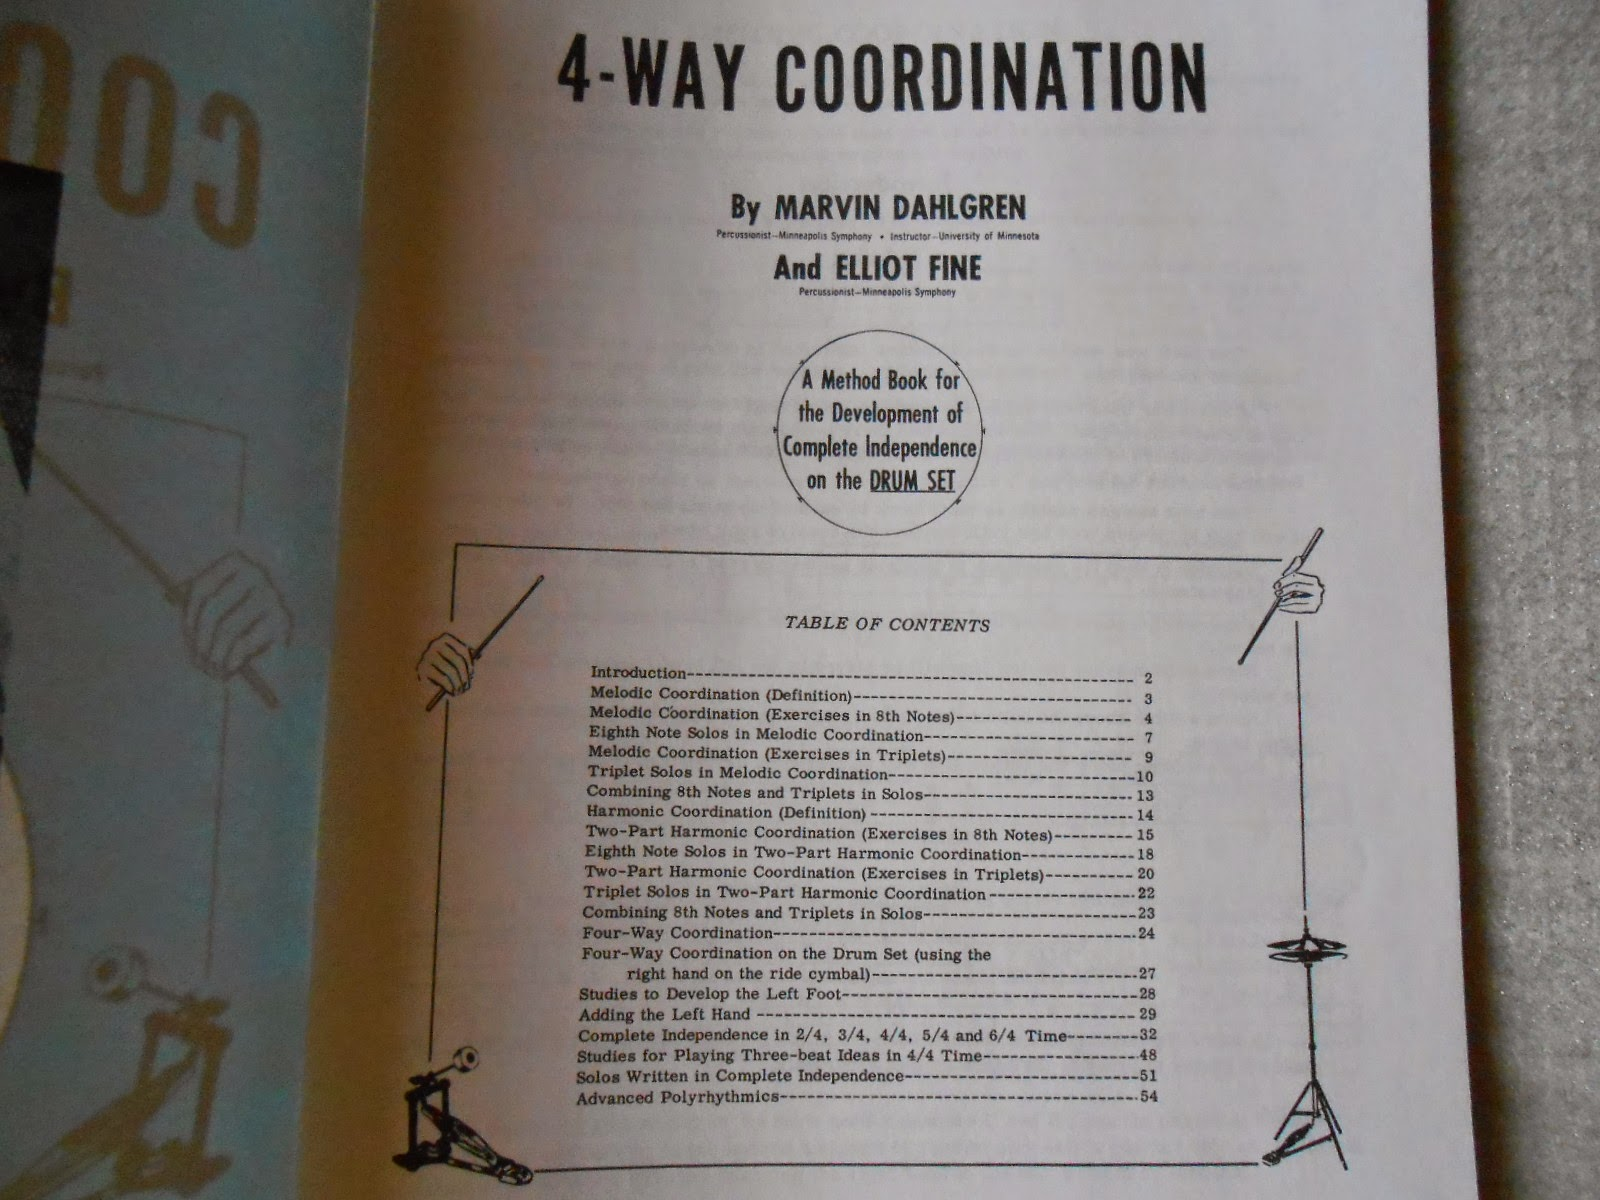 4 way coordination citroen berlingo van wiring diagram drum text books by marvin dahlgren